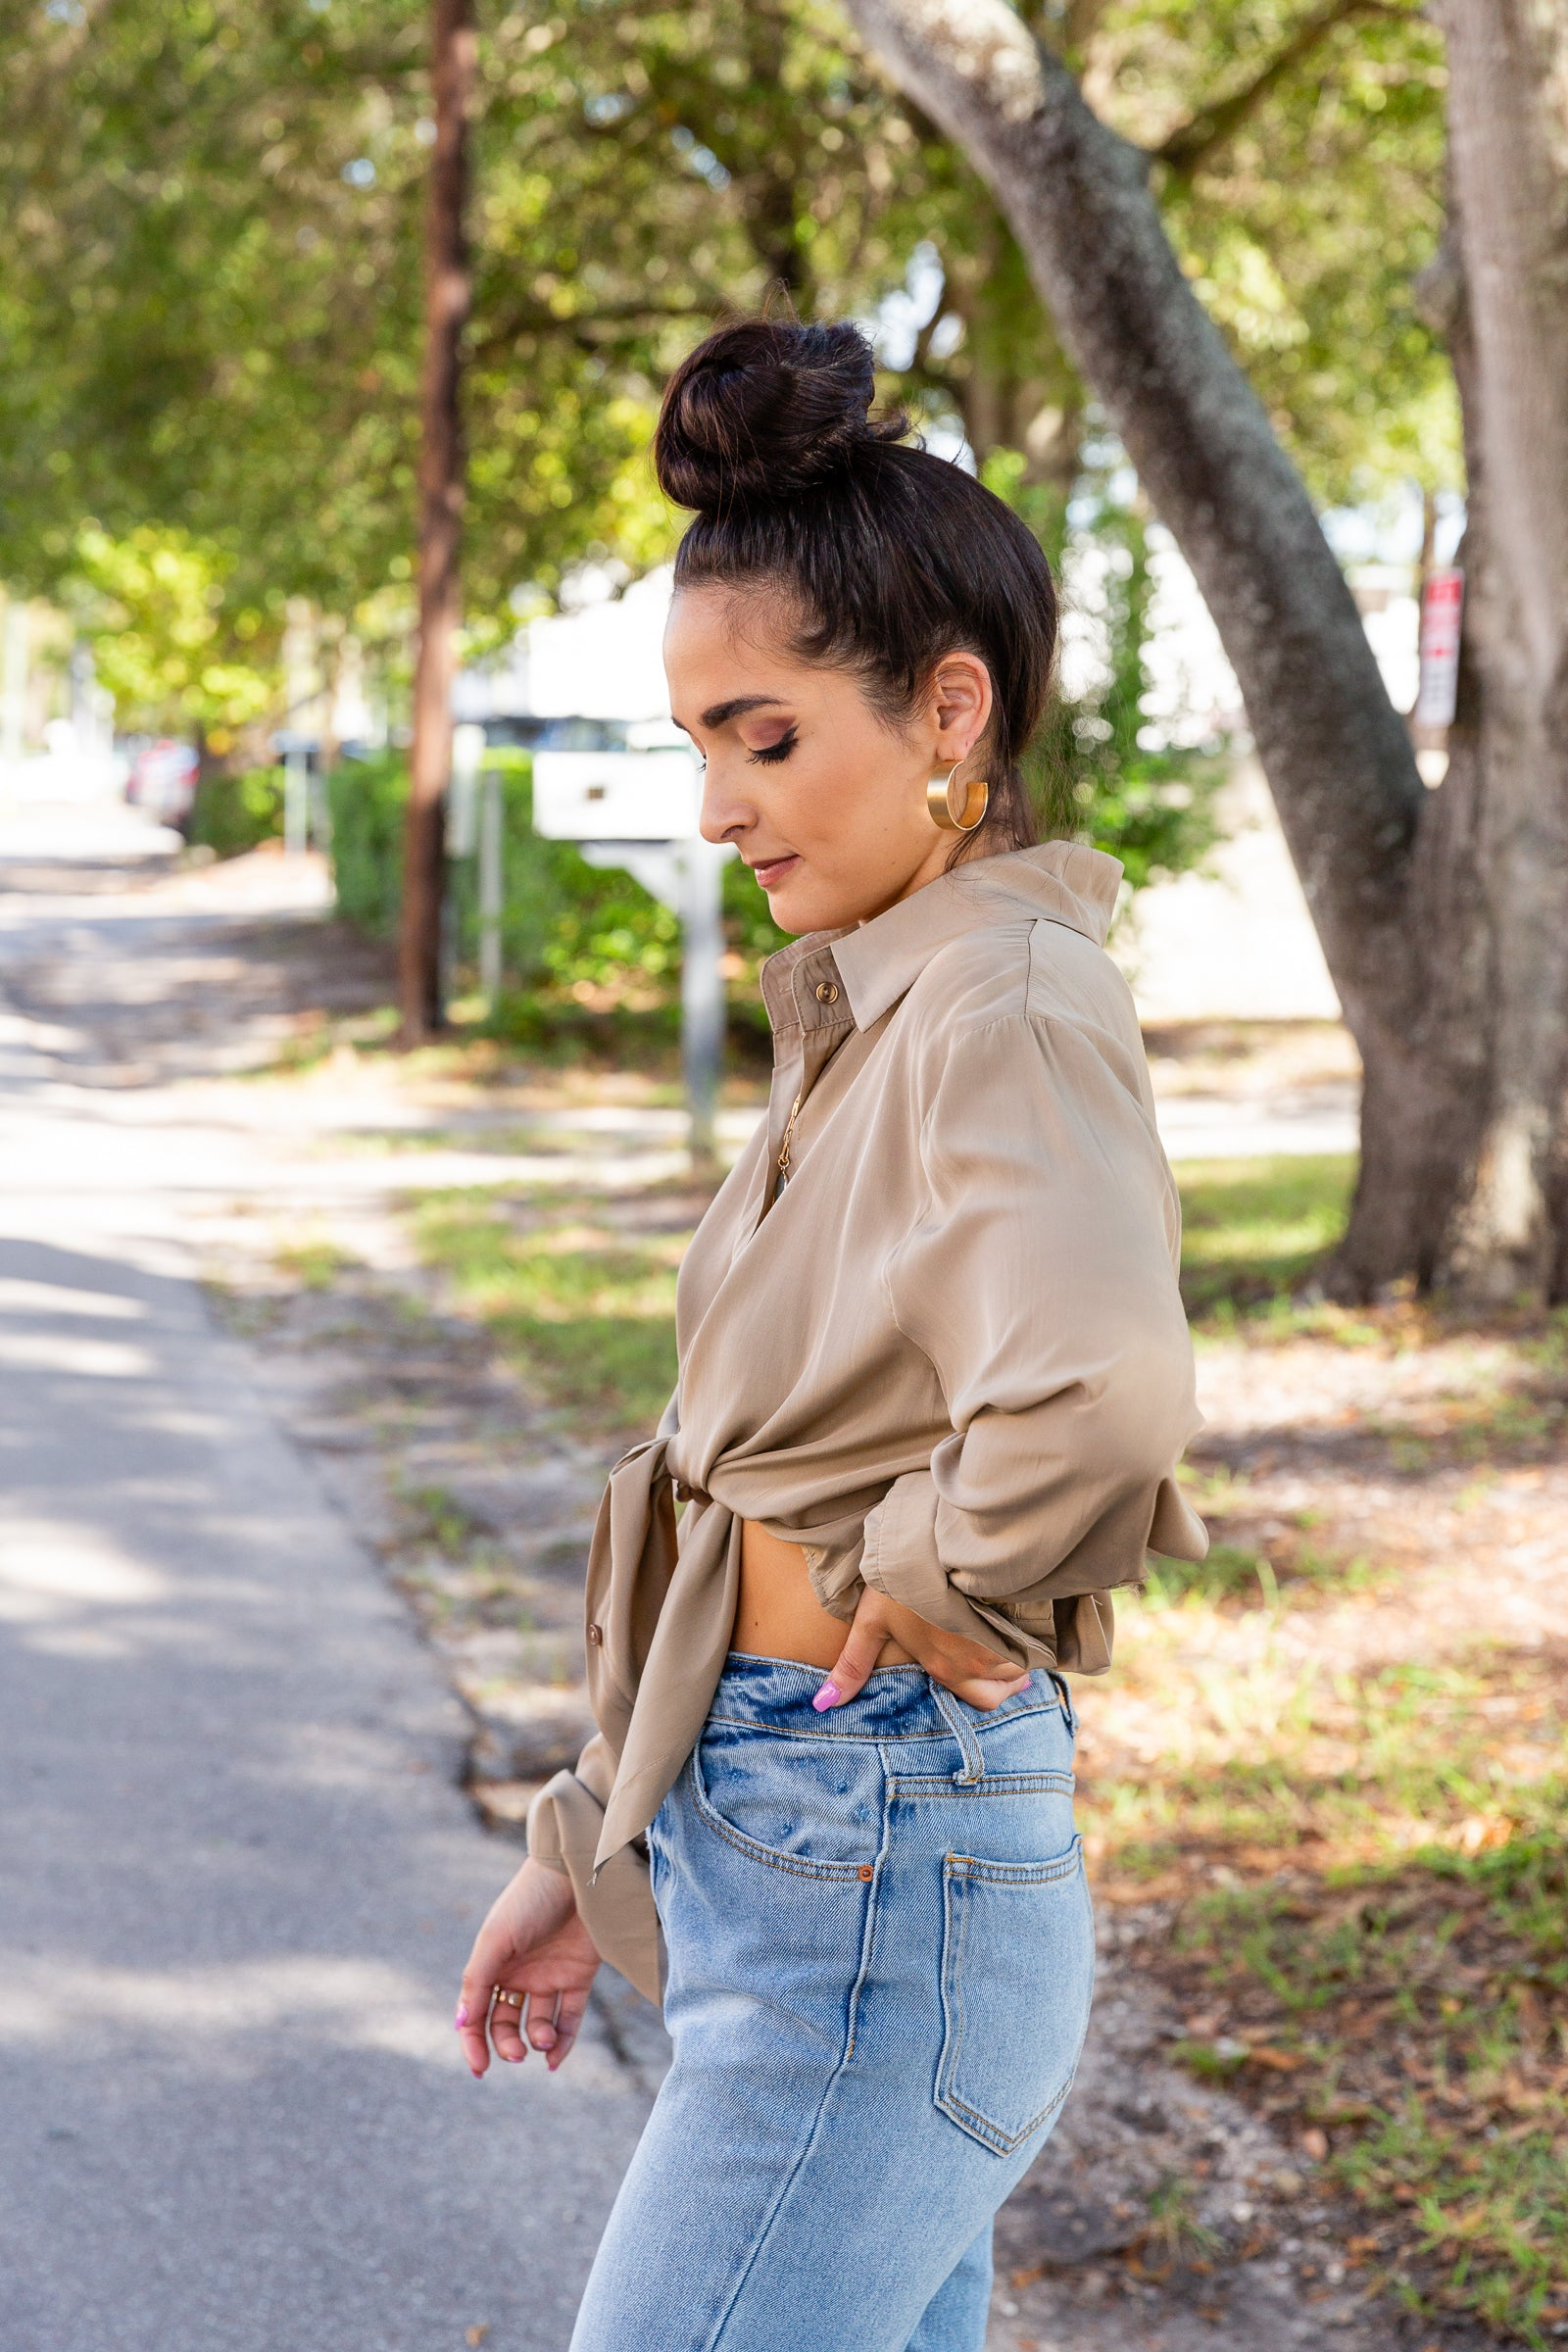 Long button cuffed sleeves that attach to a collared v-neckline with a button-down front and a cropped and relaxed silhouette meeting a hem that could be tied in the front or worn loosely.